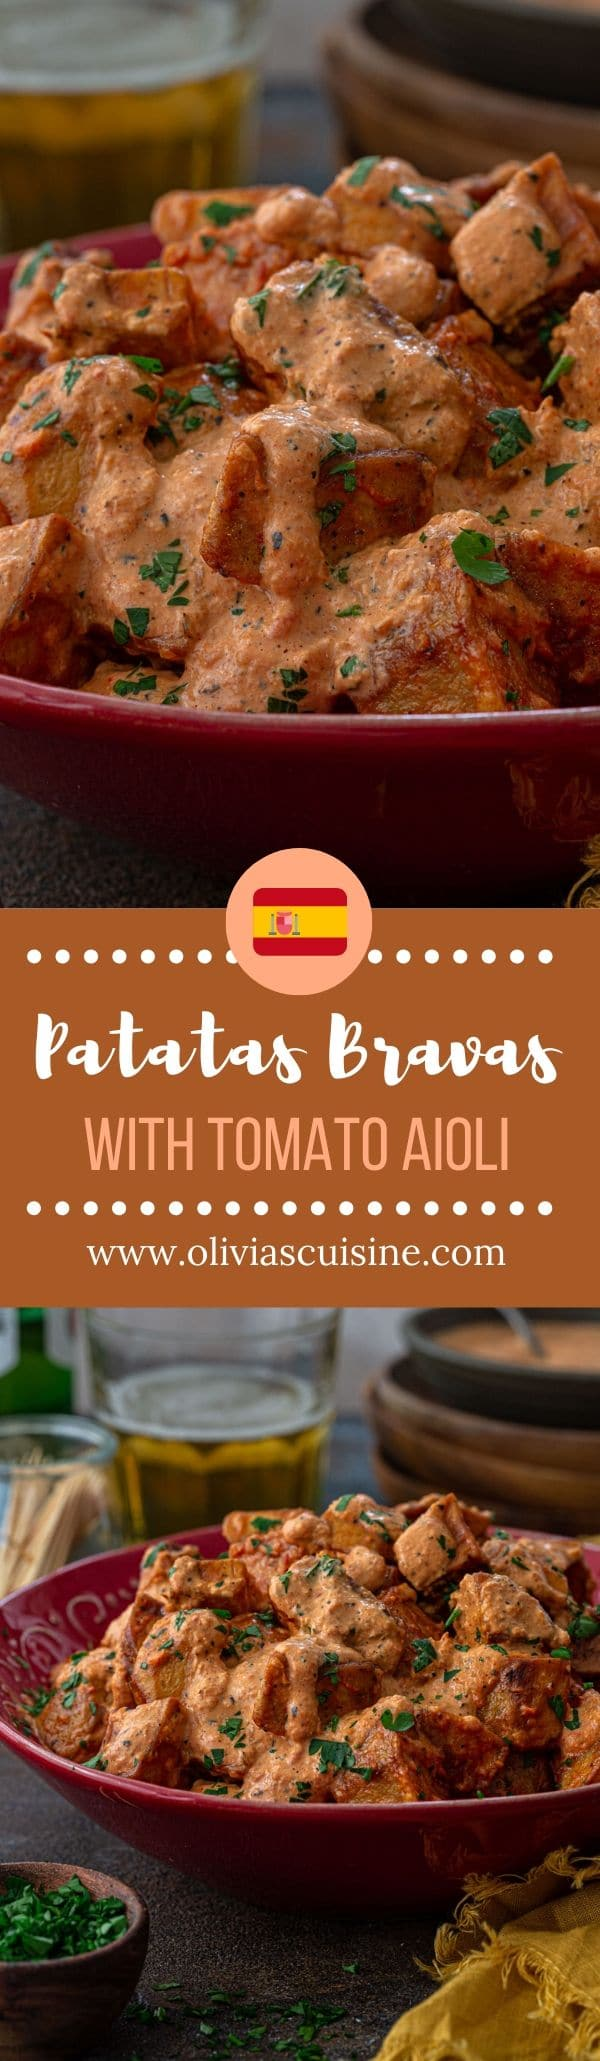 Patatas Bravas | www.oliviascuisine.com | Spain's most popular tapas, Patatas Bravas are impossible to resist! Crispy home fries tossed with a mildly spicy tomato aioli. One bite and these will surely become one of your favorite potato dishes! (Recipe and food photography by @oliviascuisine.) #patatasbravas #spanish #potatoes #appetizers #tapas #papasbravas